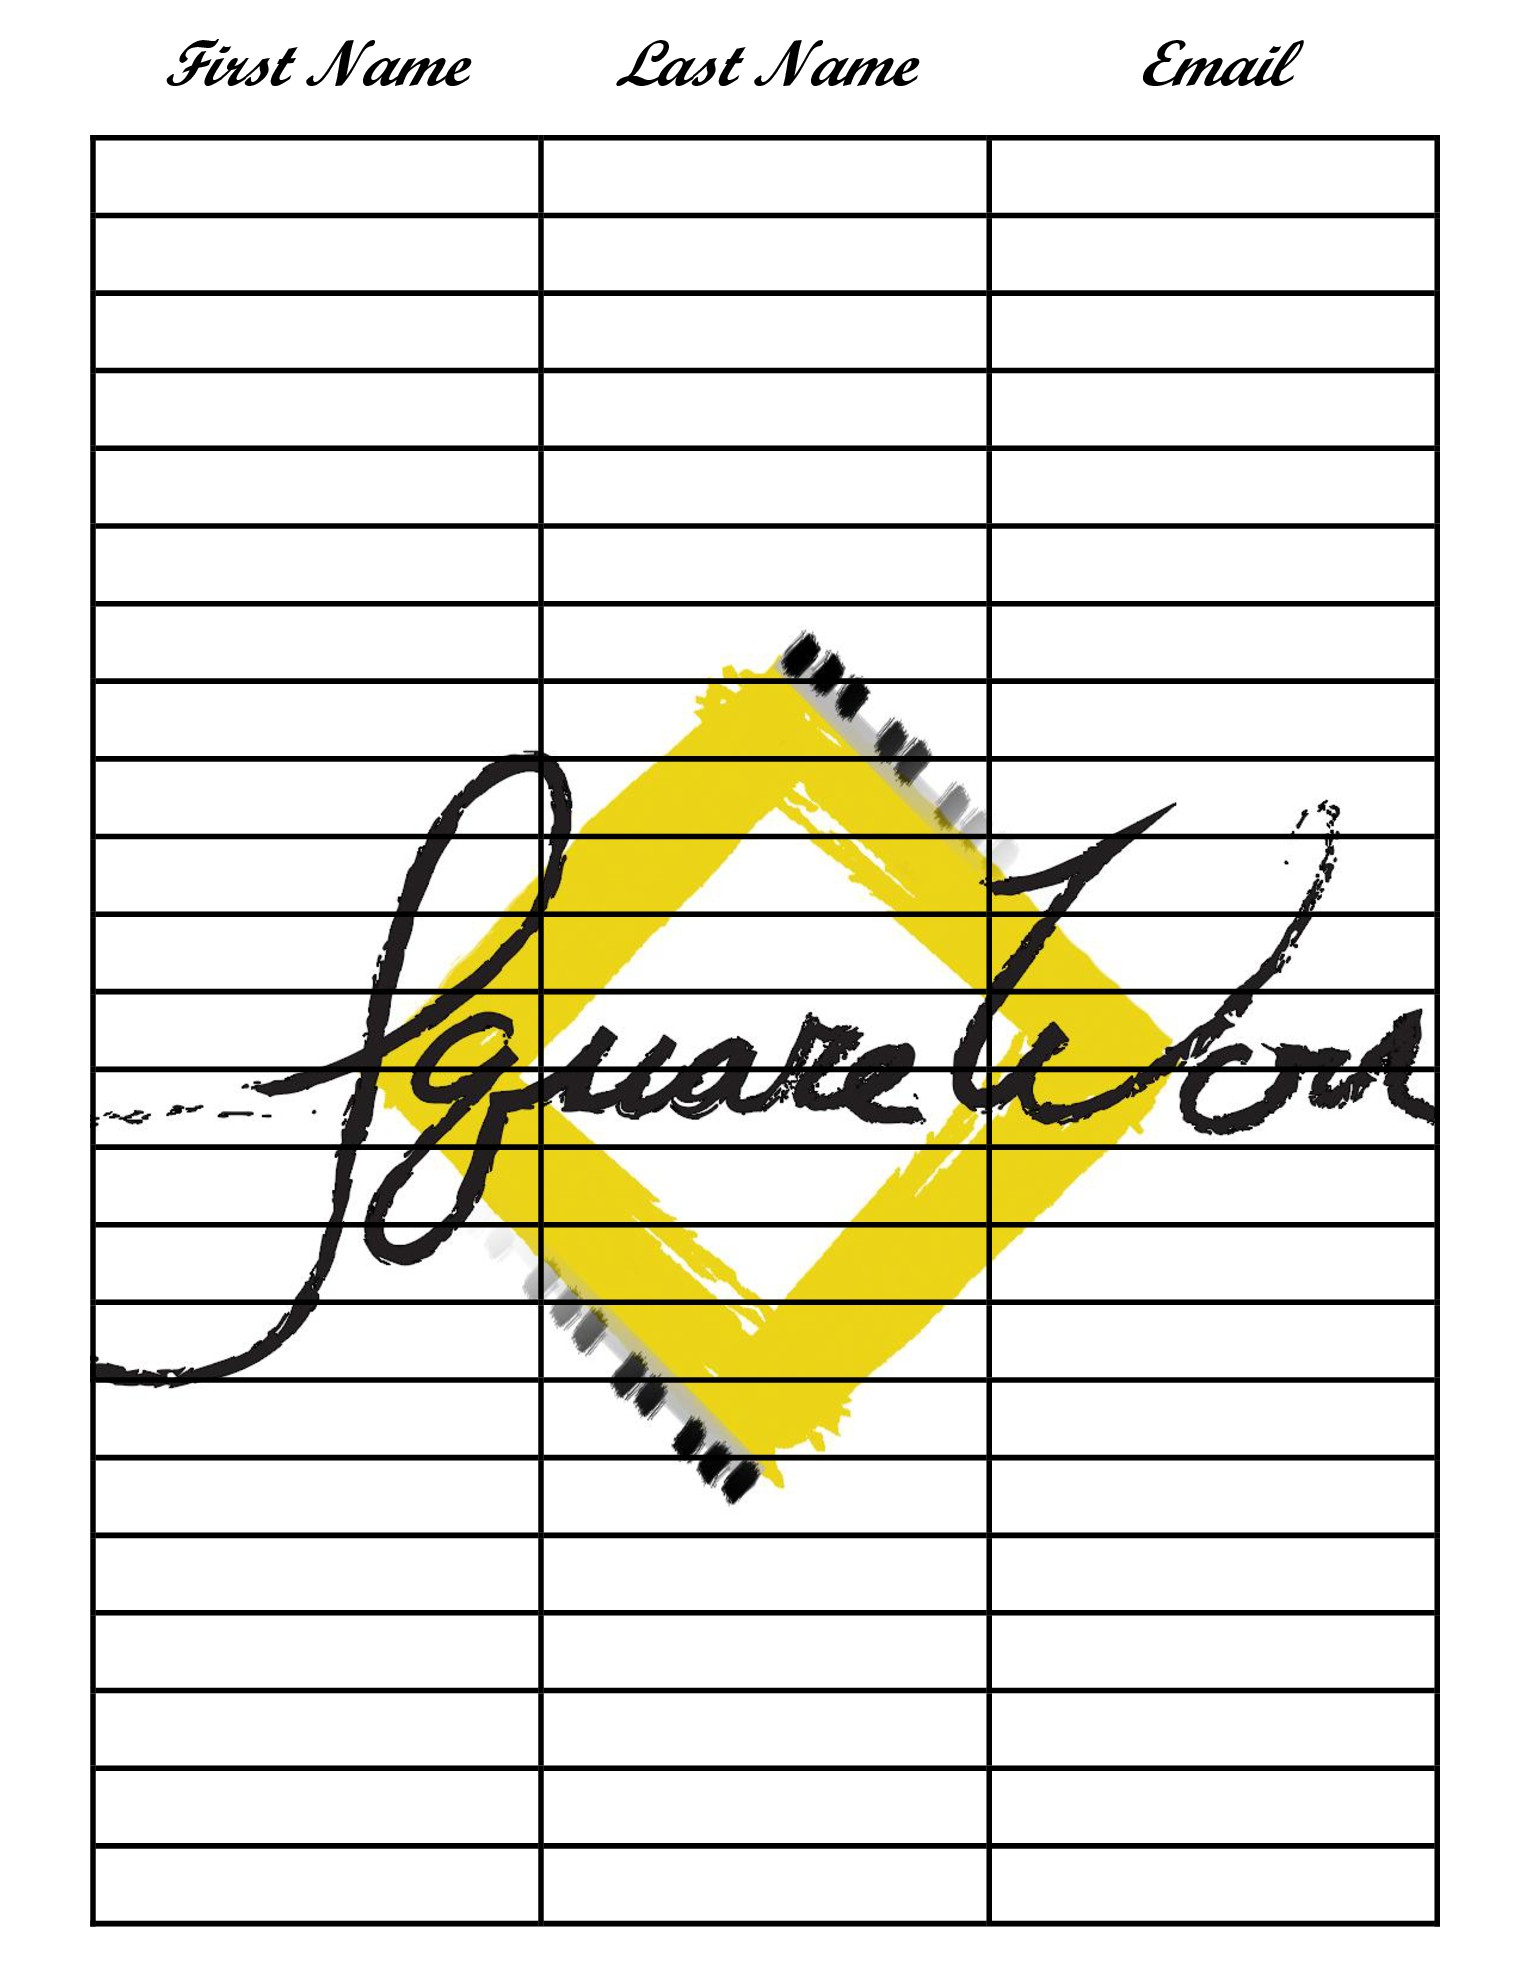 SquareWon Sign-Up Sheet.jpg